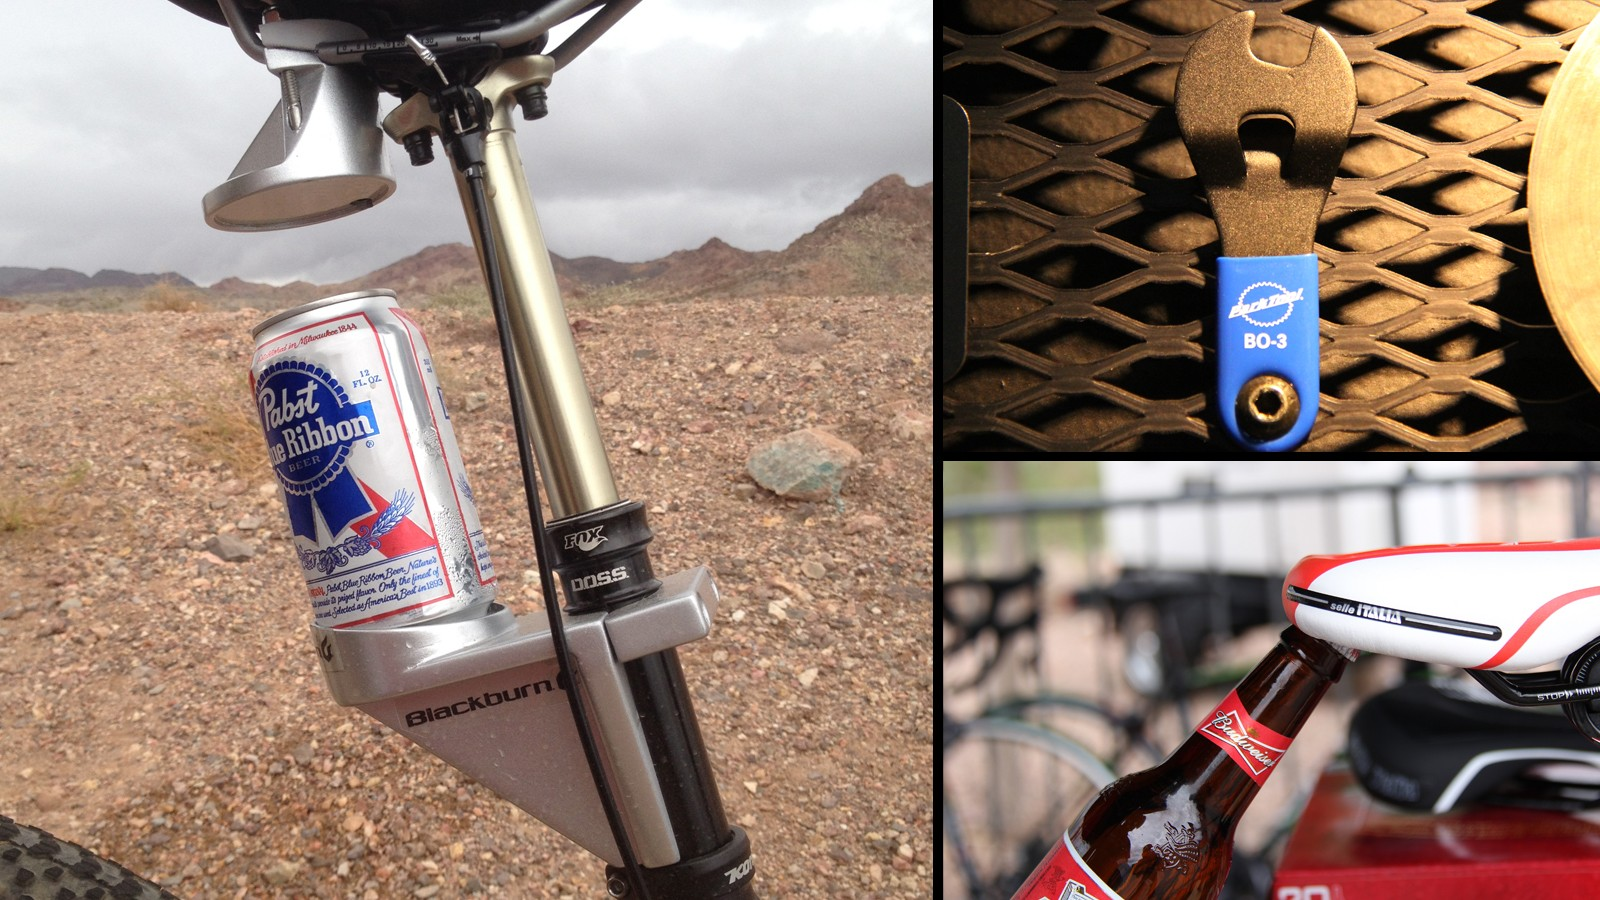 The cycling industry is making significant advancements in the field of post-ride hydration technology